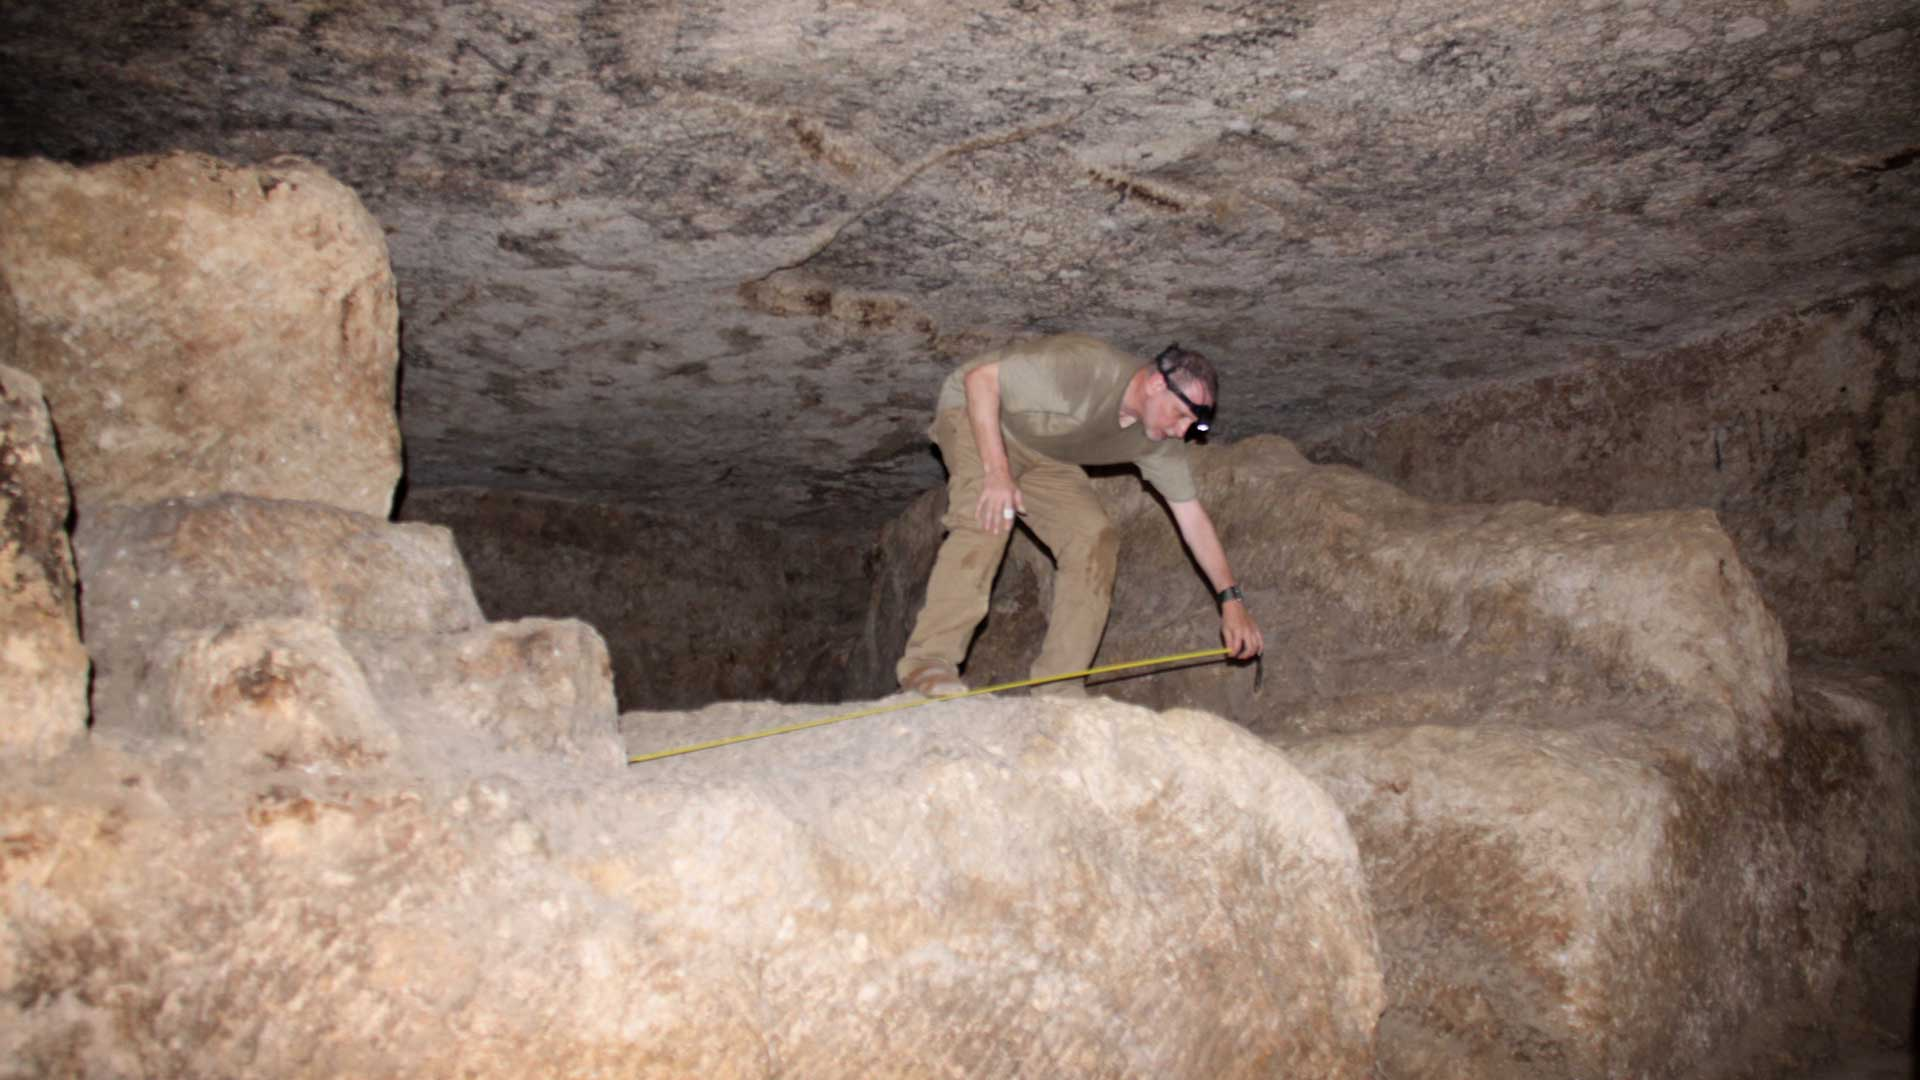 GS surveying the unfinished giant sarcophagi in the rock chamber